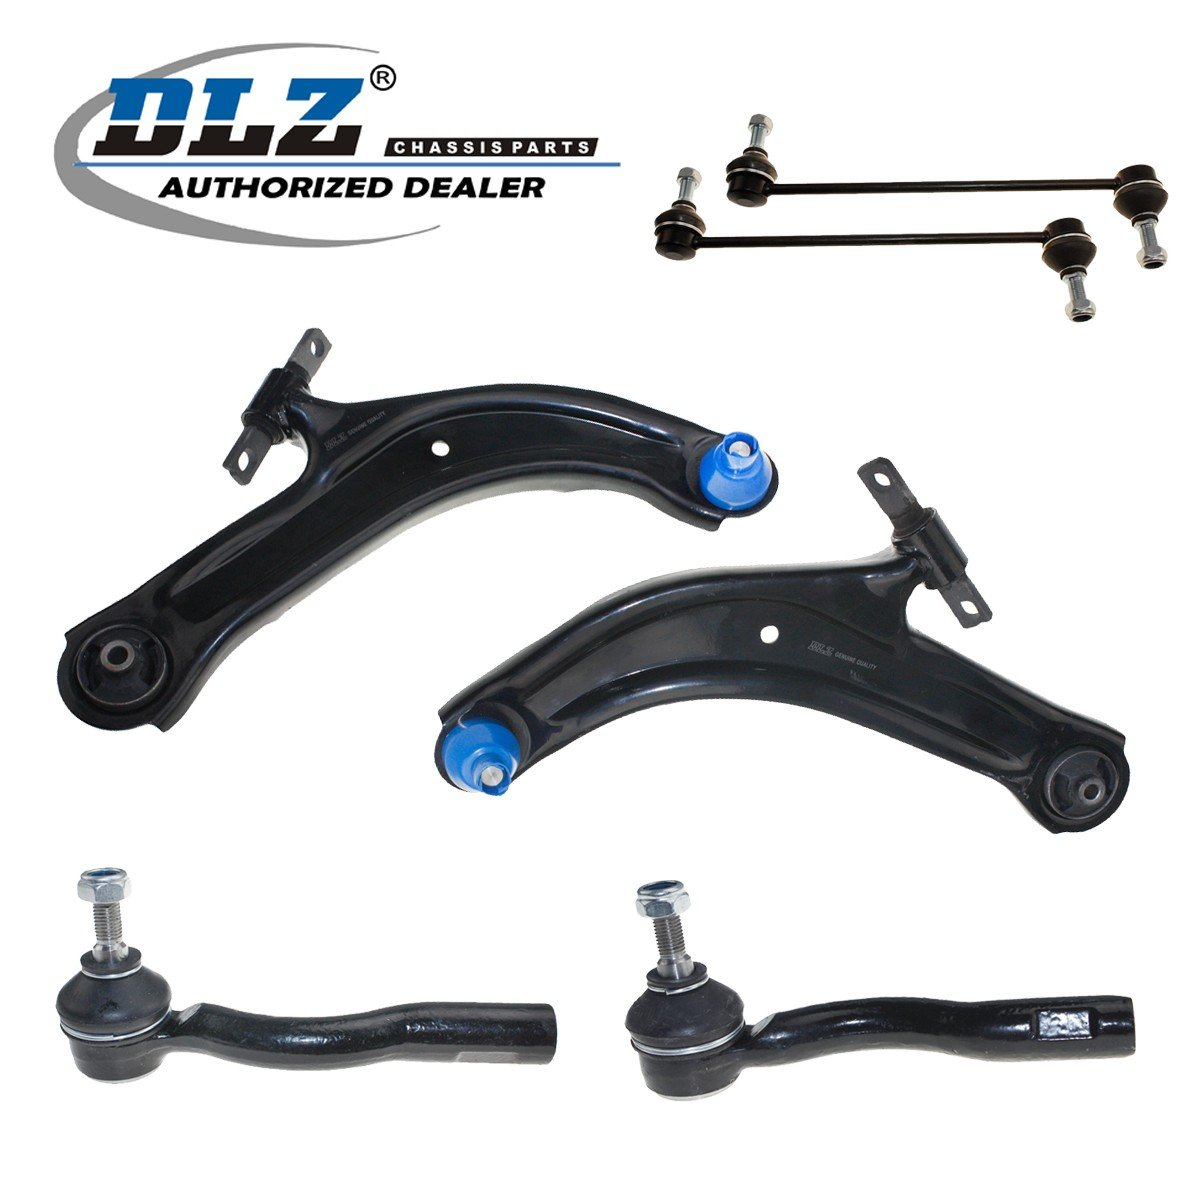 DLZ 6 Pcs Front Suspension Kit-2 Lower Control Arm Ball Joint Assembly 2 Sway Bar 2 Outer Tie Rod End Compatible with 2007 2008 2009 2010 2011 2012 Nissan Sentra ES800574 ES800575 K620373 K750096